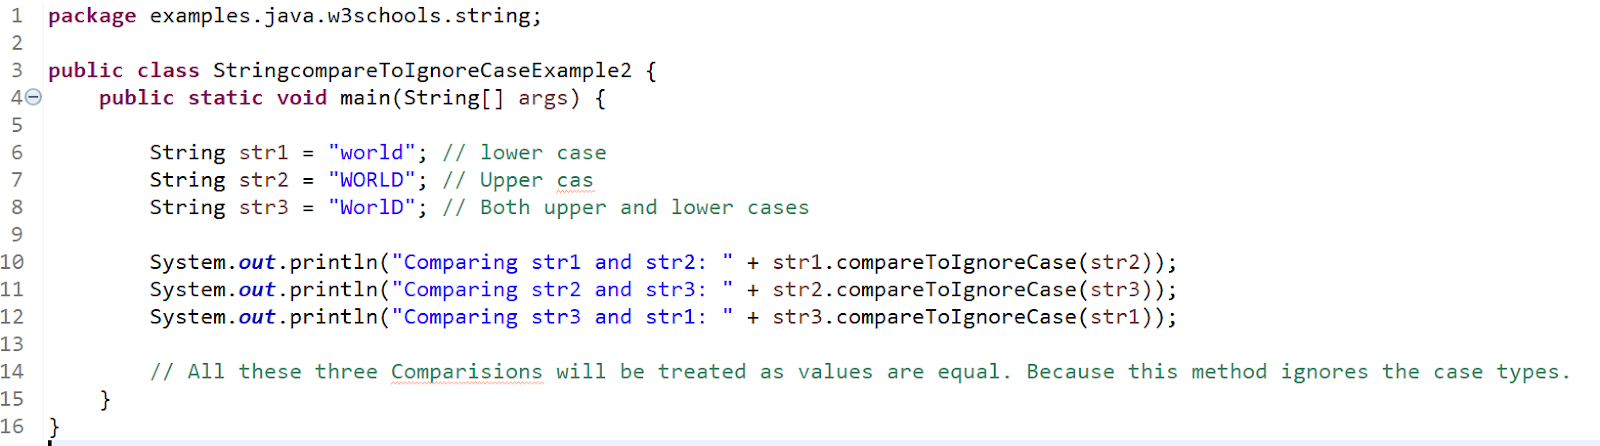 Java String compareToIgnoreCase() example 2